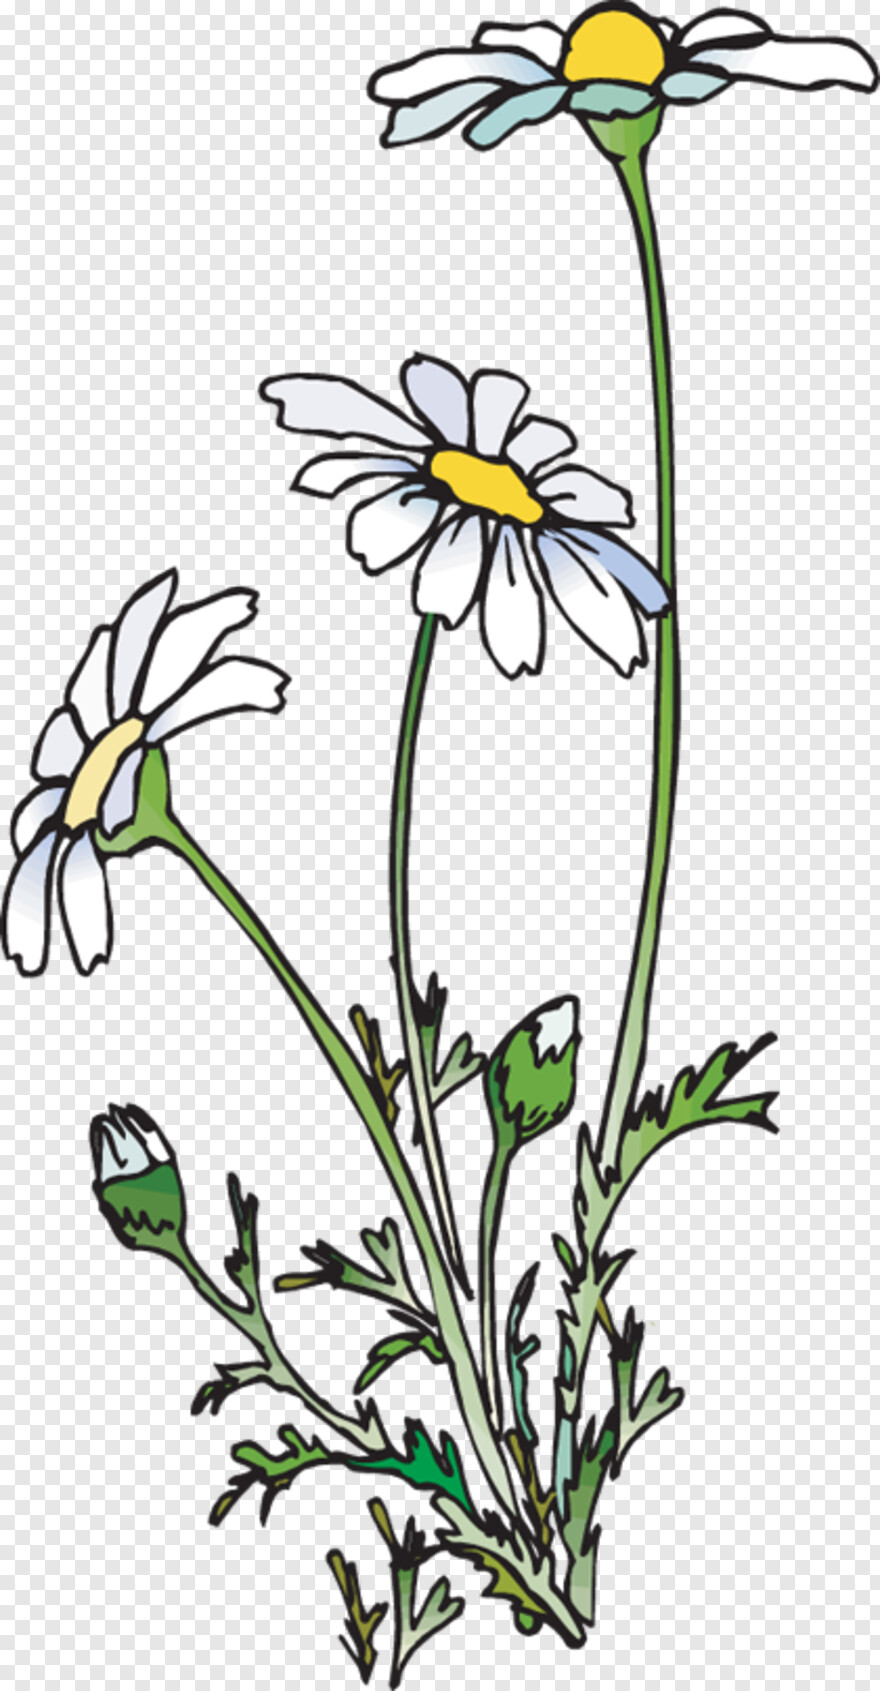 Beans - Daisies Clipart, Png Download